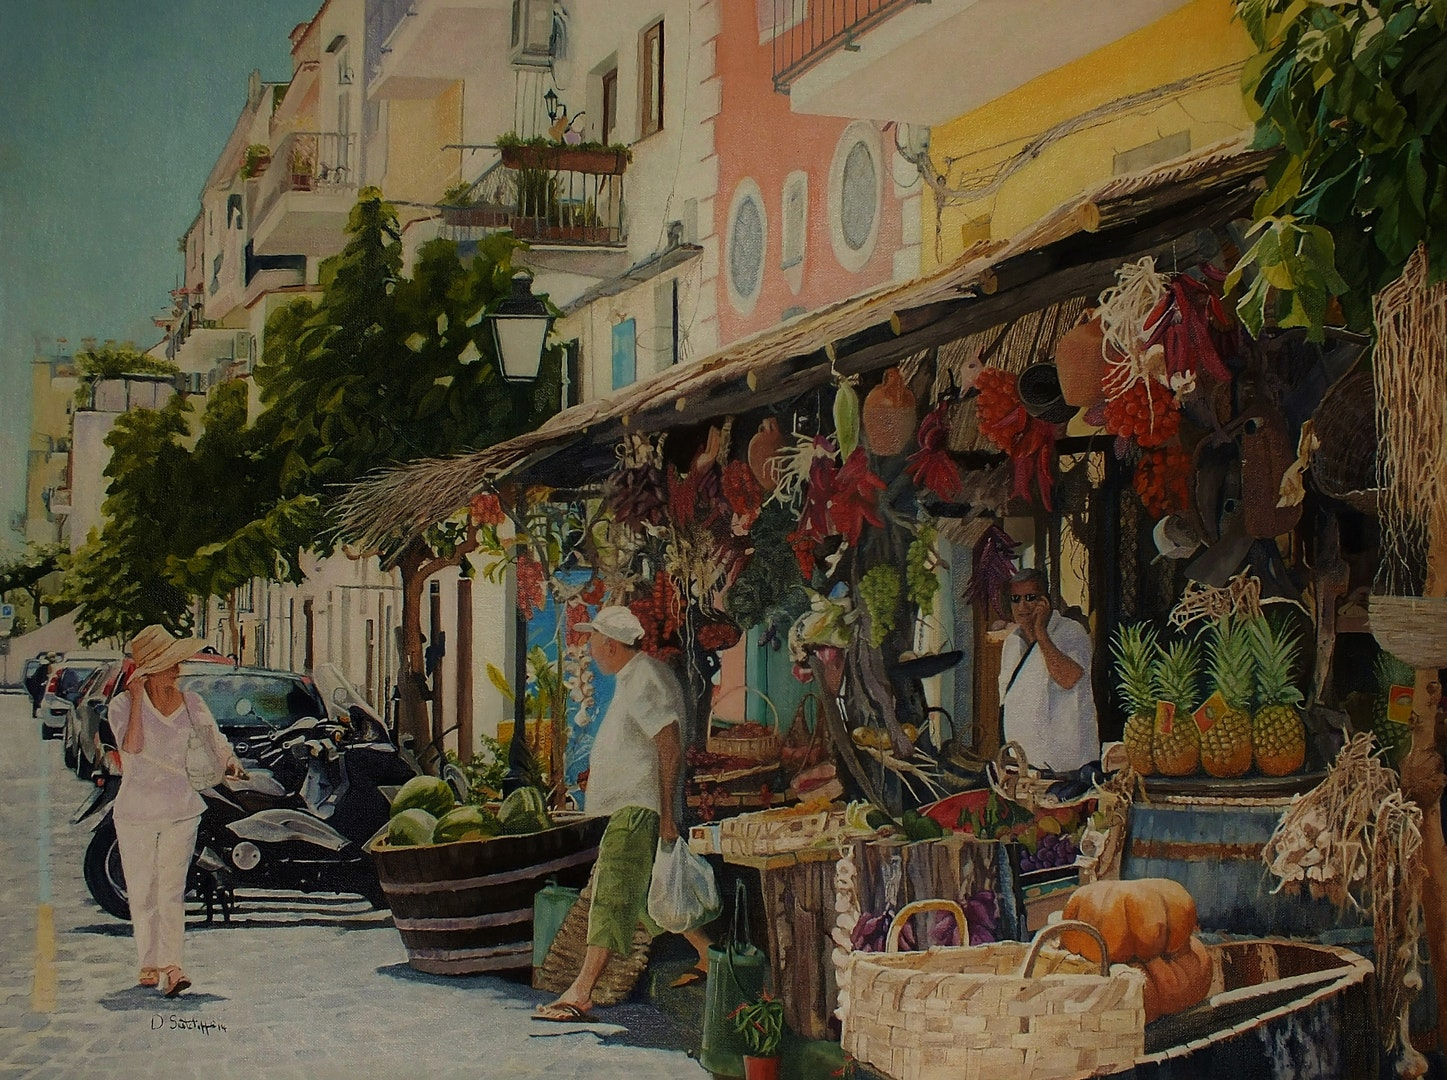 'Ischia town', David Sutcliffe, Oil on canvas, 60 x 80 cm